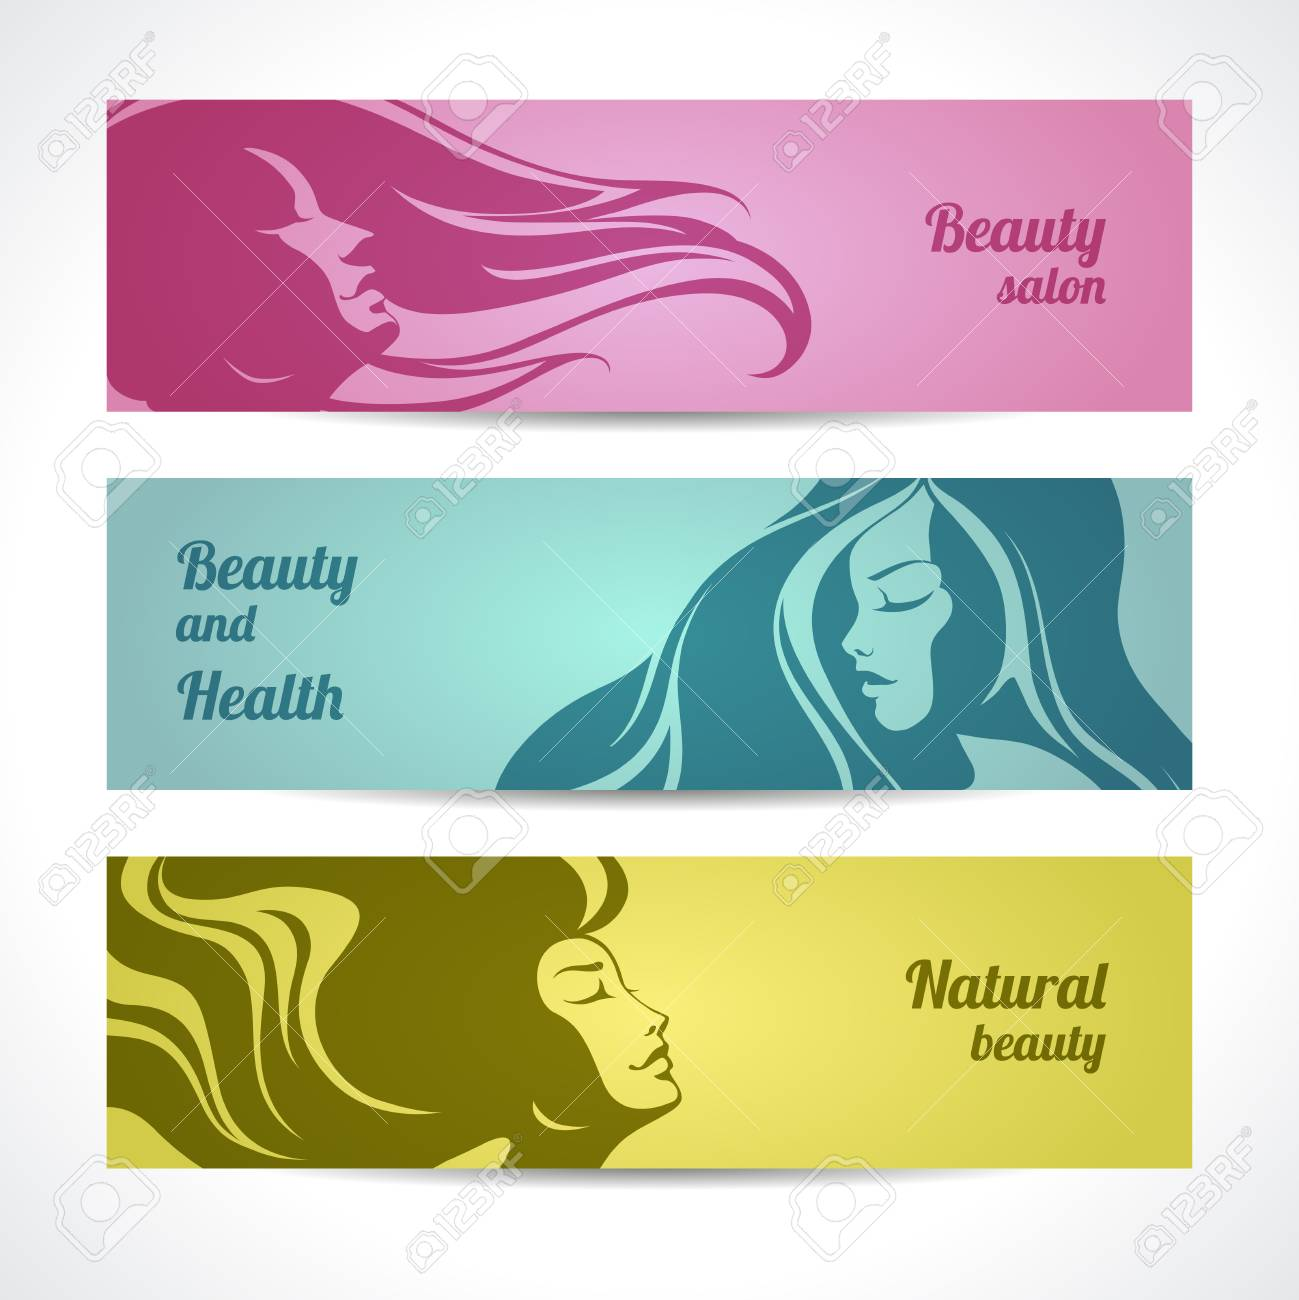 Set Of Beauty Salon Cosmetics Spa Banners Labels Cards Design Royalty Free Cliparts Vectors And Stock Illustration Image 96931048